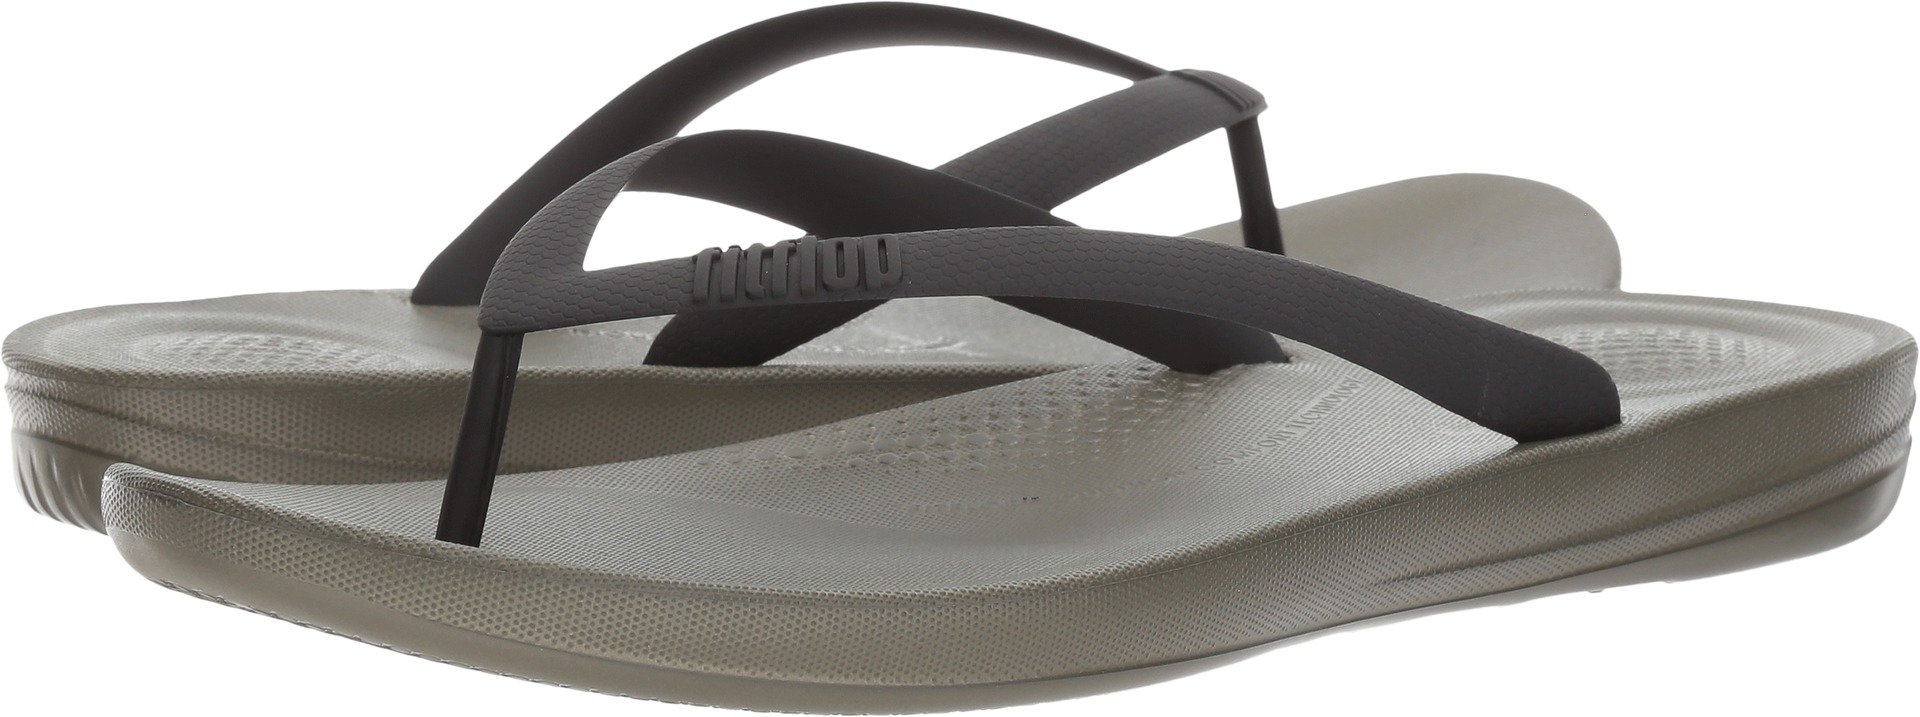 FitFlop Men's Iqushion Ergonomic Flip-Flop, Camouflage Green Mix, 8 M US